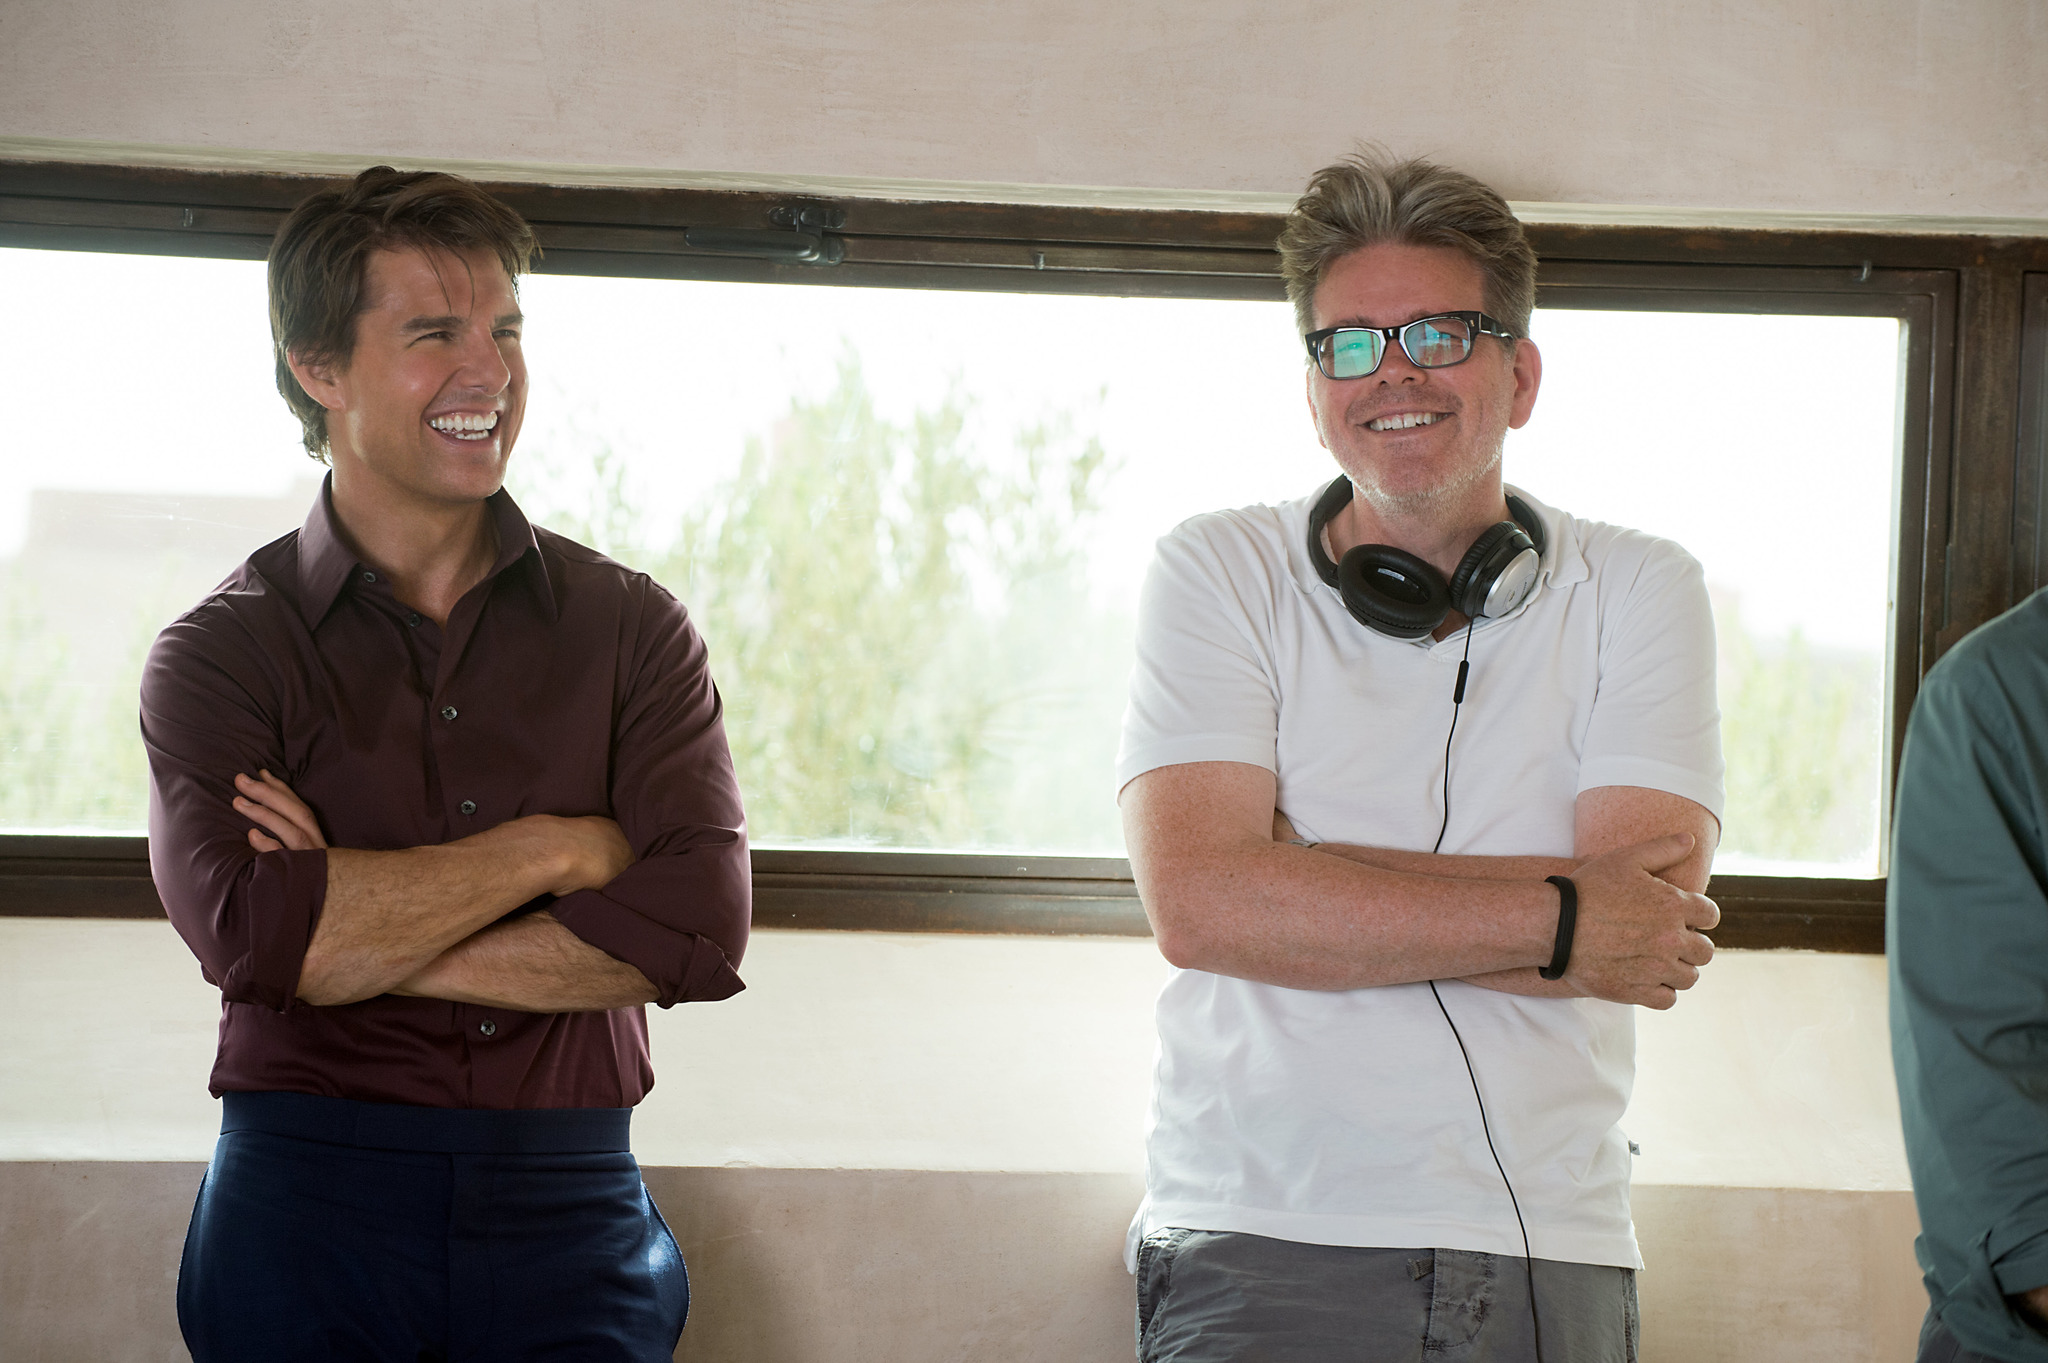 Tom Cruise and Christopher McQuarrie in Mission: Impossible - Rogue Nation (2015)